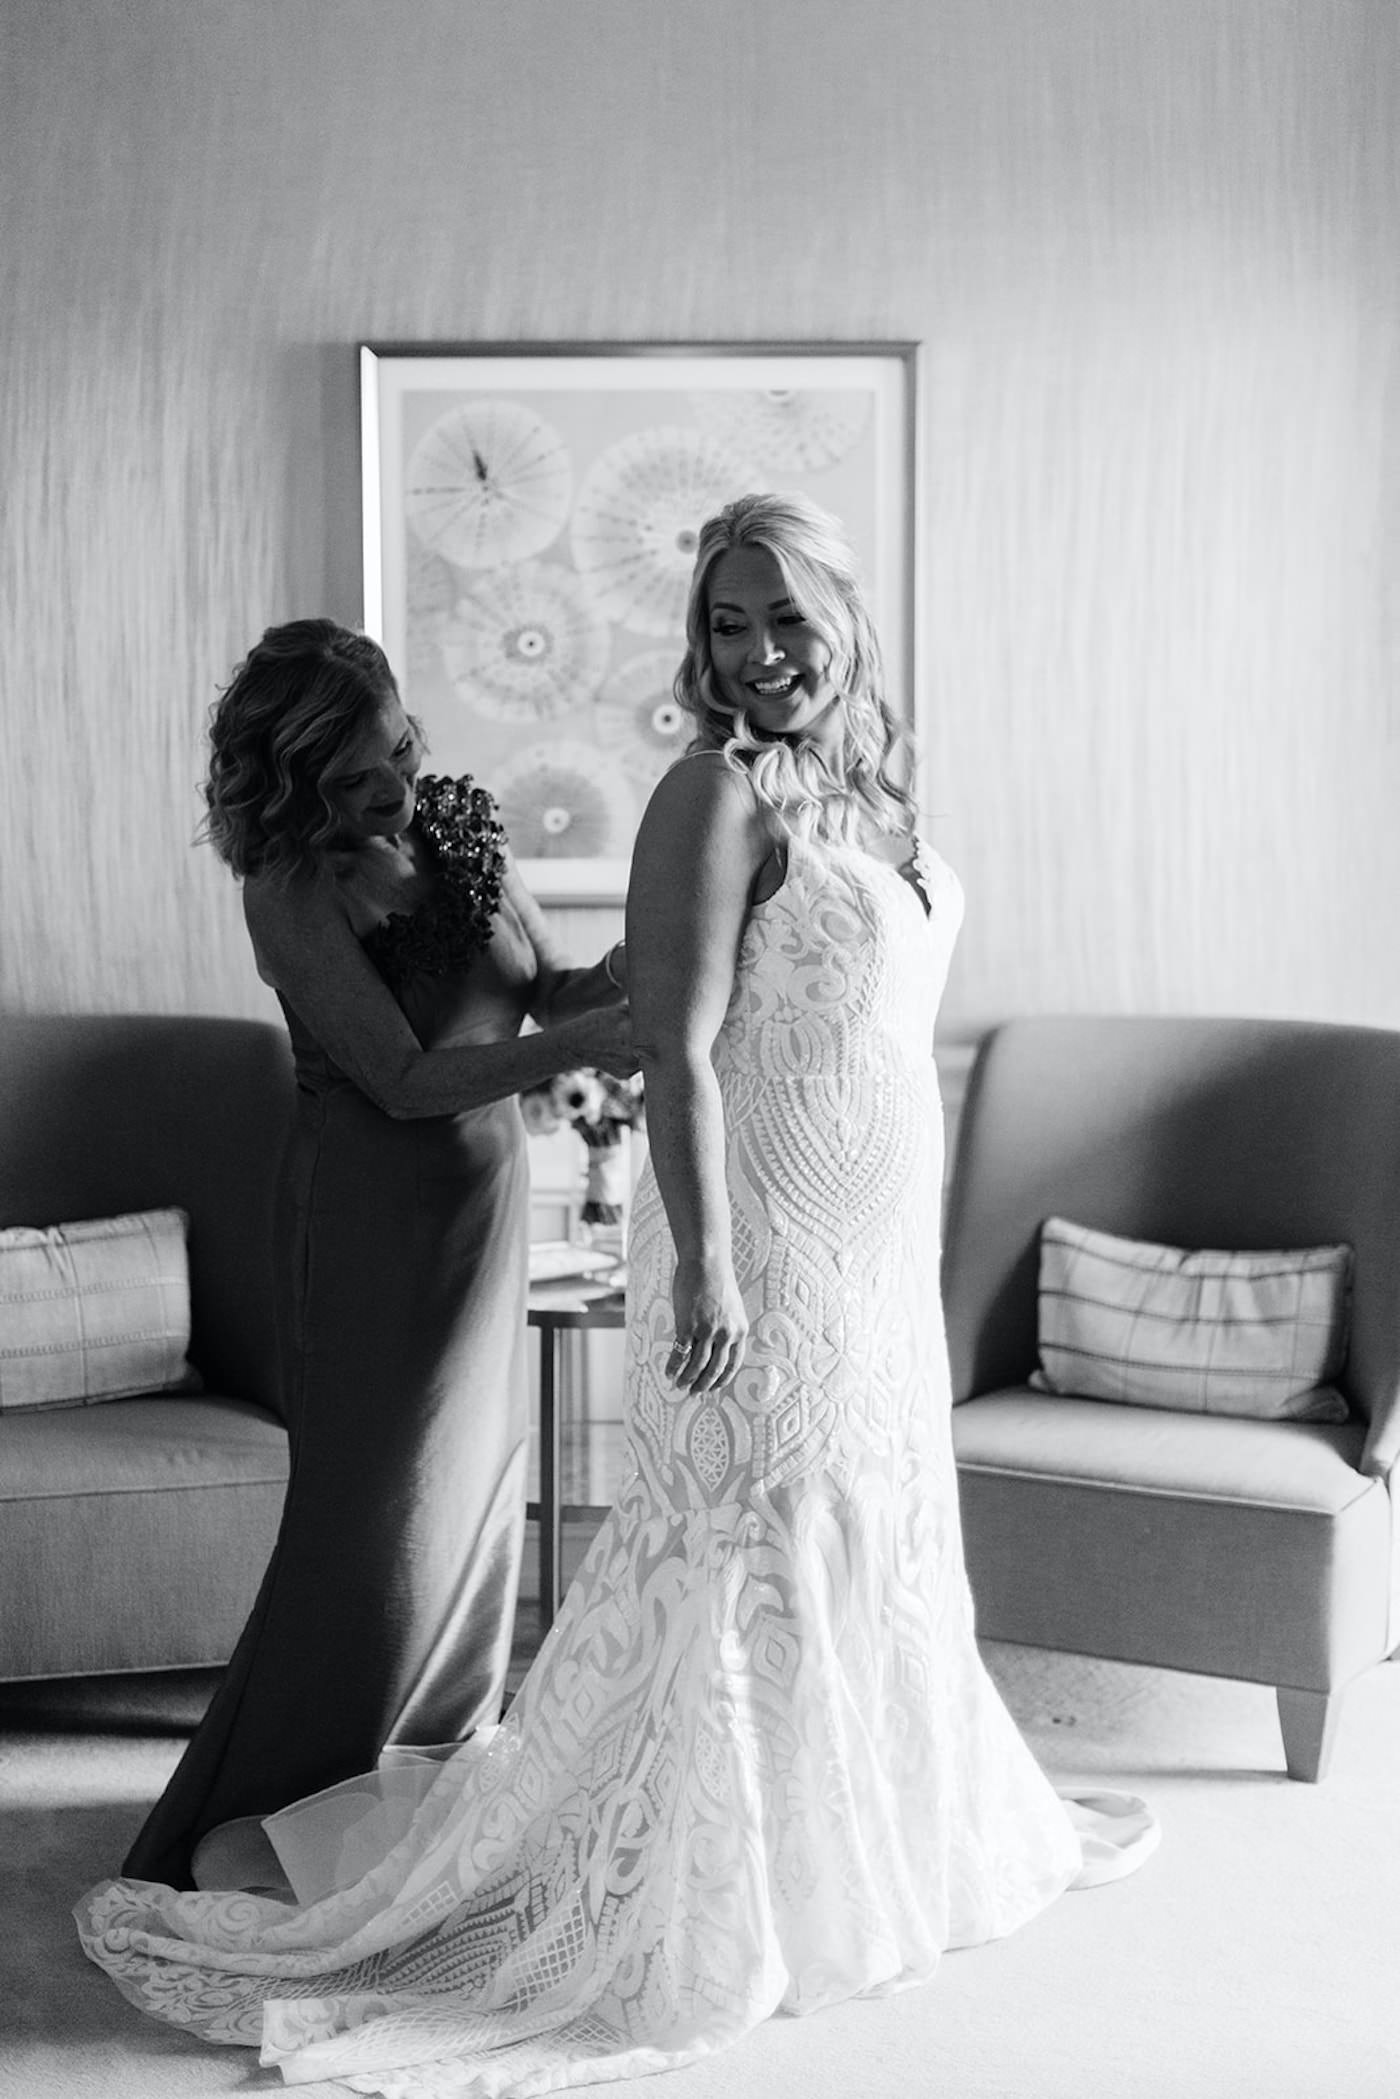 Florida Bride and Mother Getting Ready Photo, Mom Putting On Daughters Dress, Bride Wearing Hayley Paige White and Ivory Wedding Dress with Lace Overlay Detailing